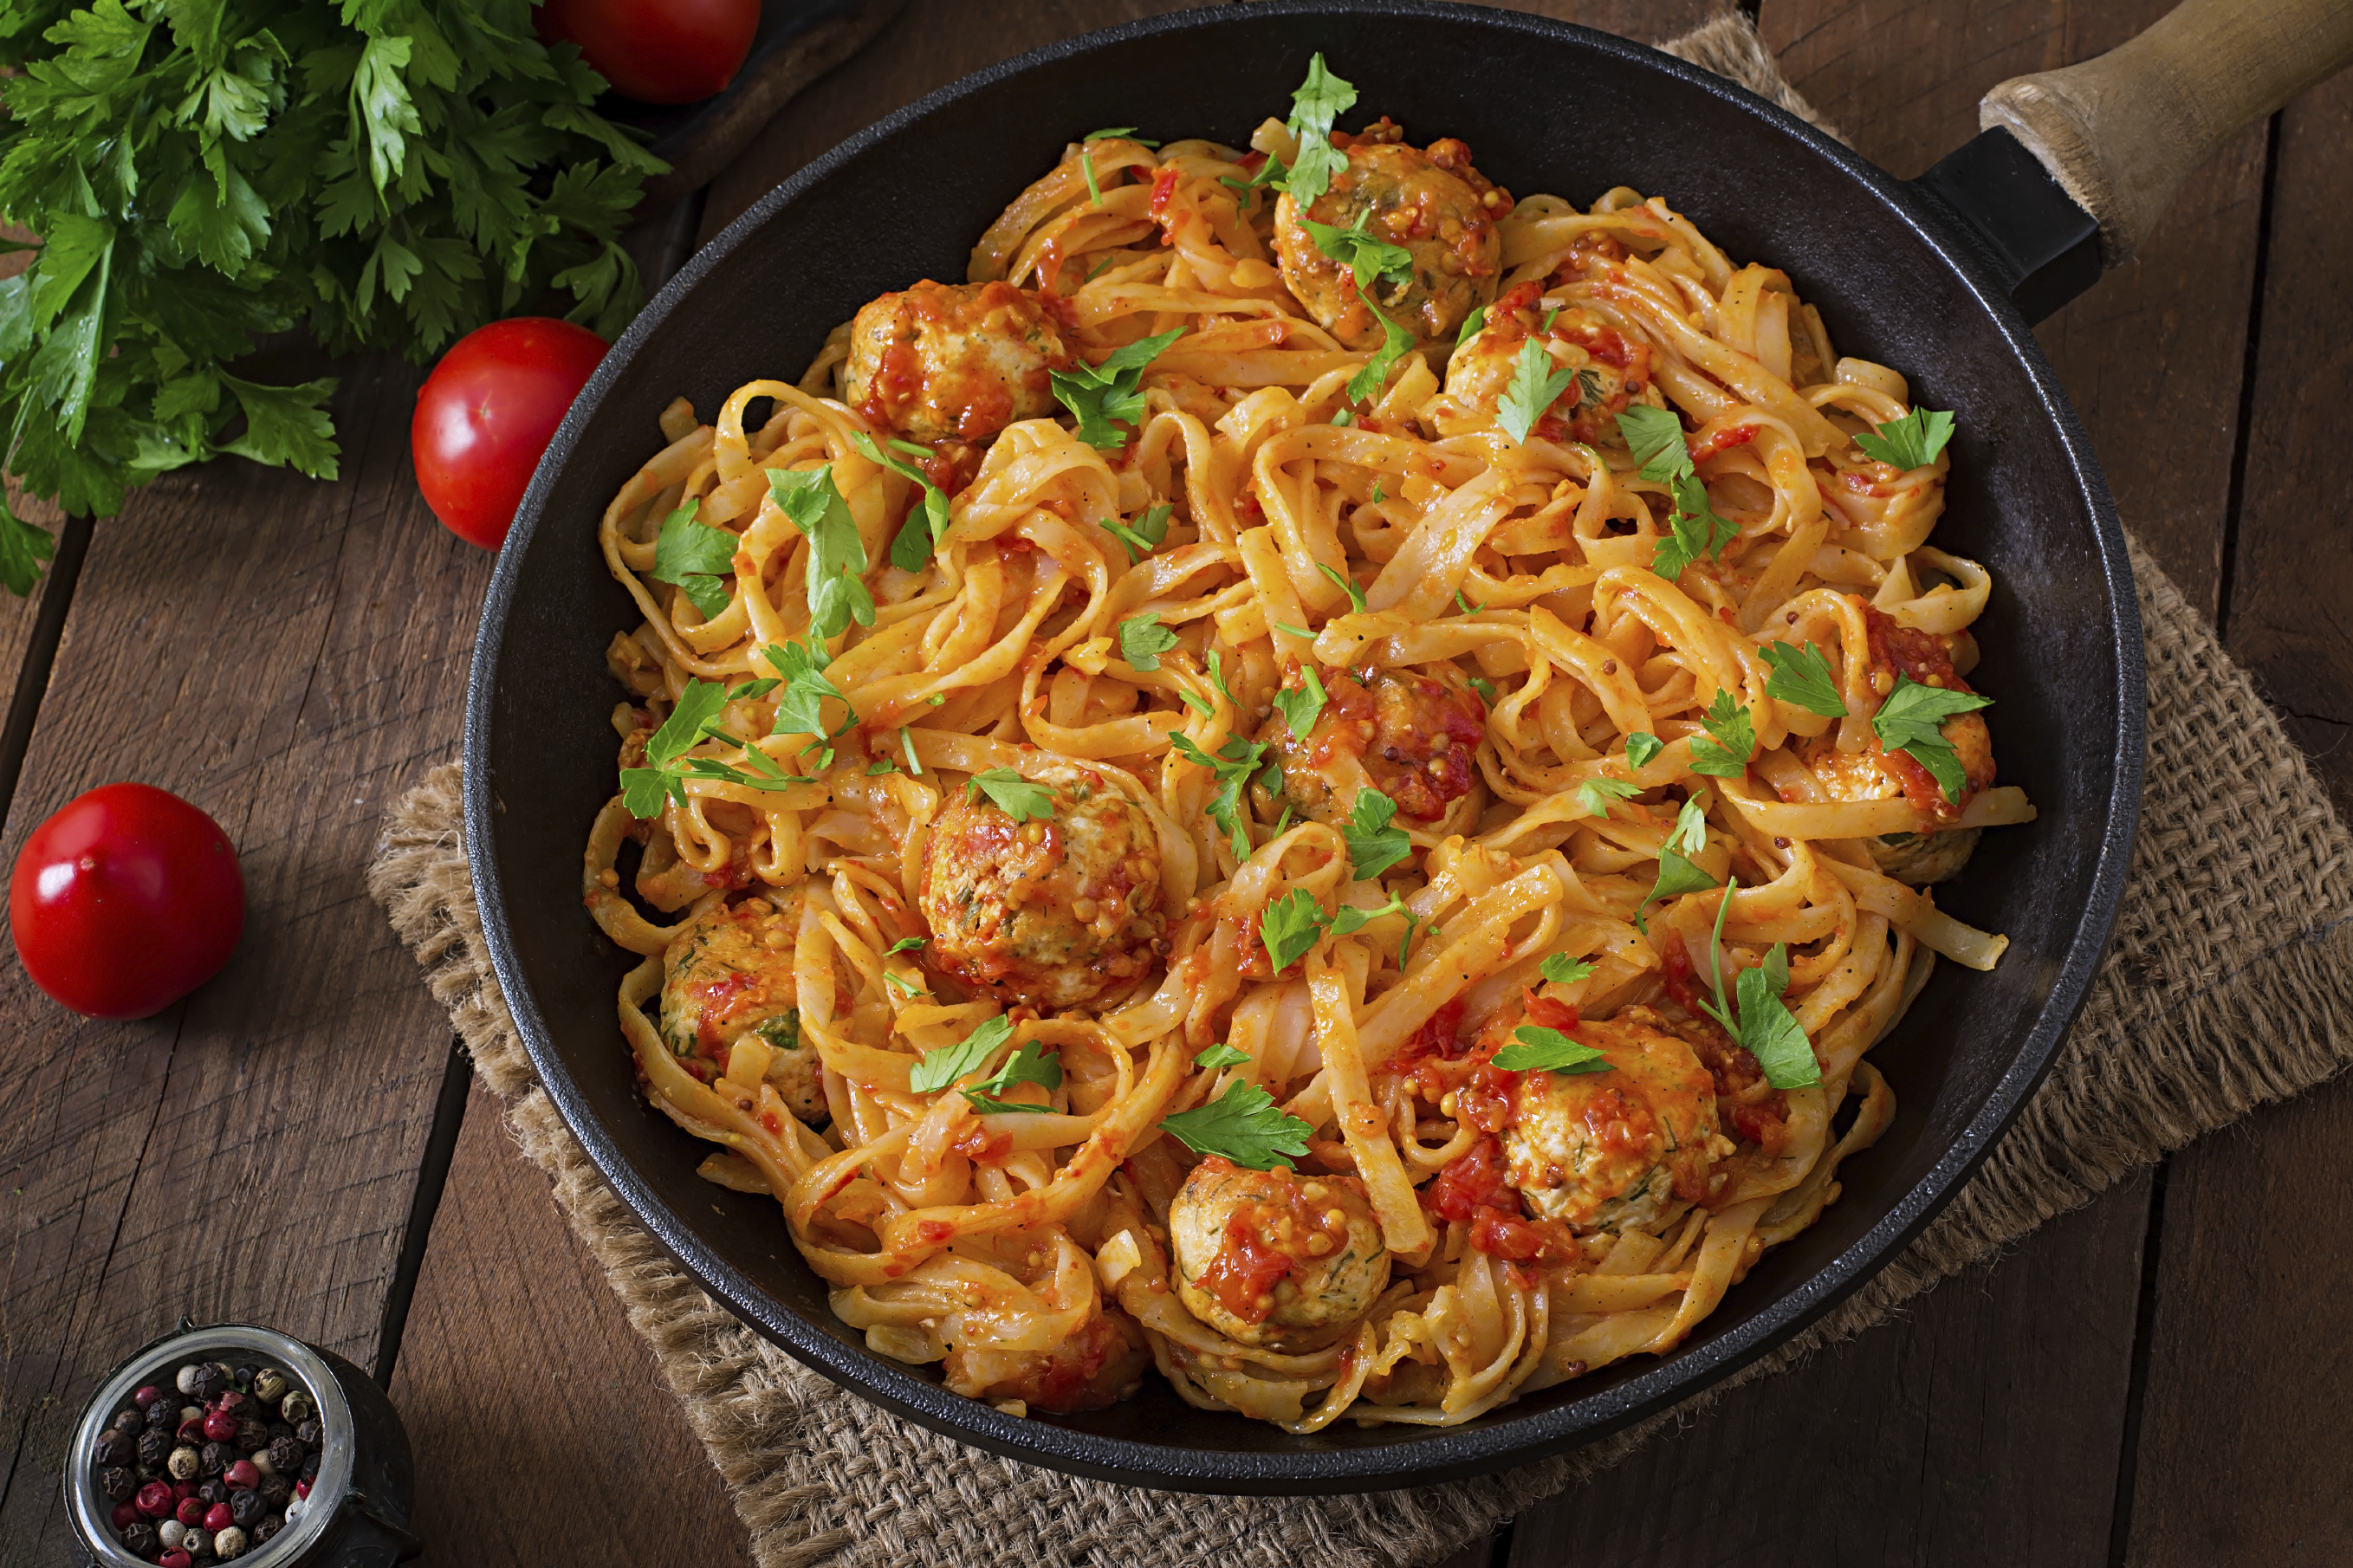 How to Make your Pasta Dish Healthier